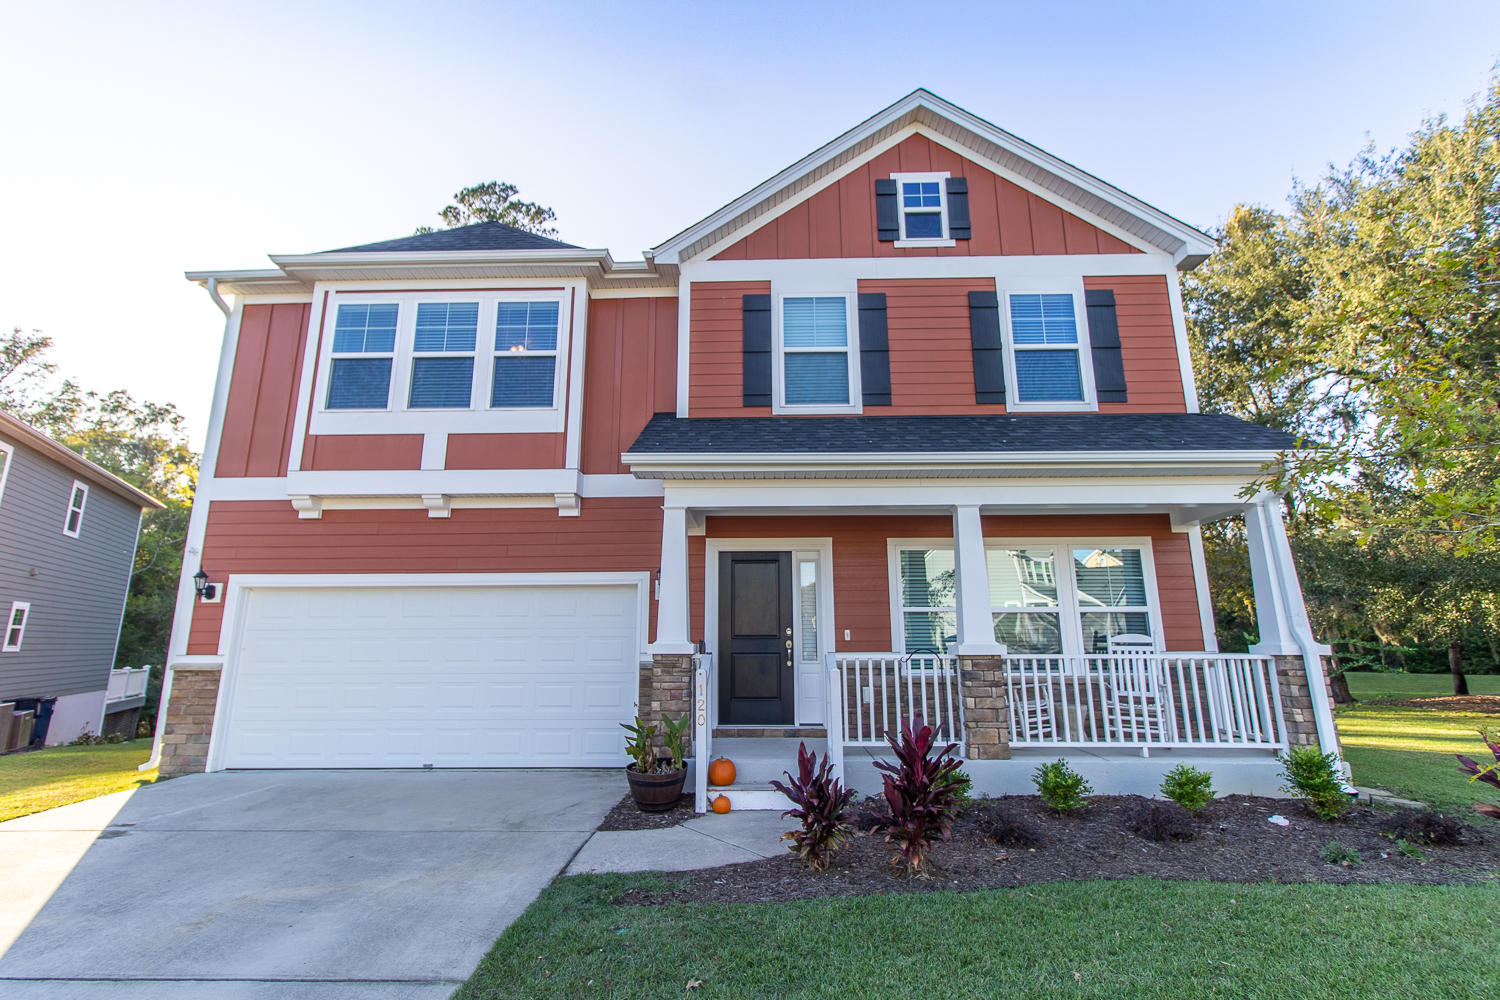 120 McDonald Court Summerville, Sc 29485